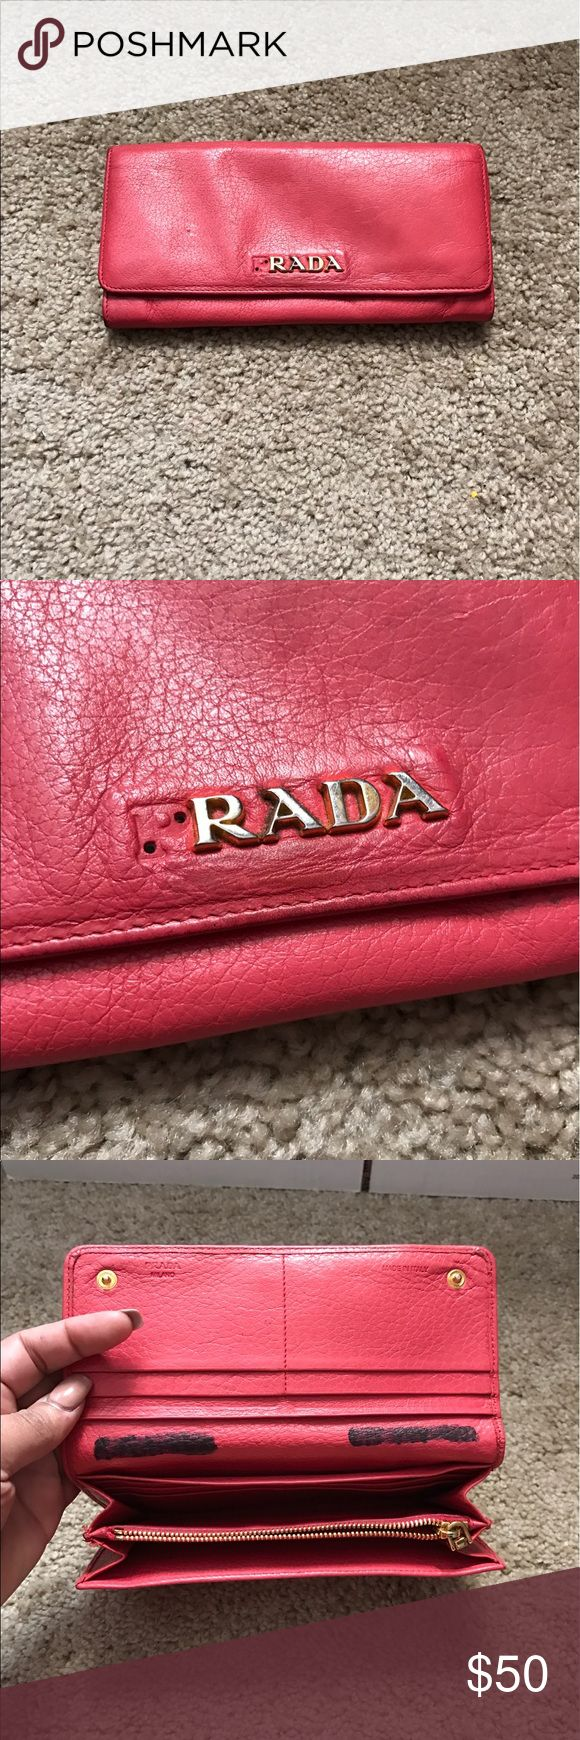 AUTHENTIC PRADA WALLET wallet is in ok condition . its missing the P from PRADA. also i had my name one and crossed it out..!!! other than that really cute wallet. Price marked to sell really sheap open to offers! no low ballers Prada Bags Wallets